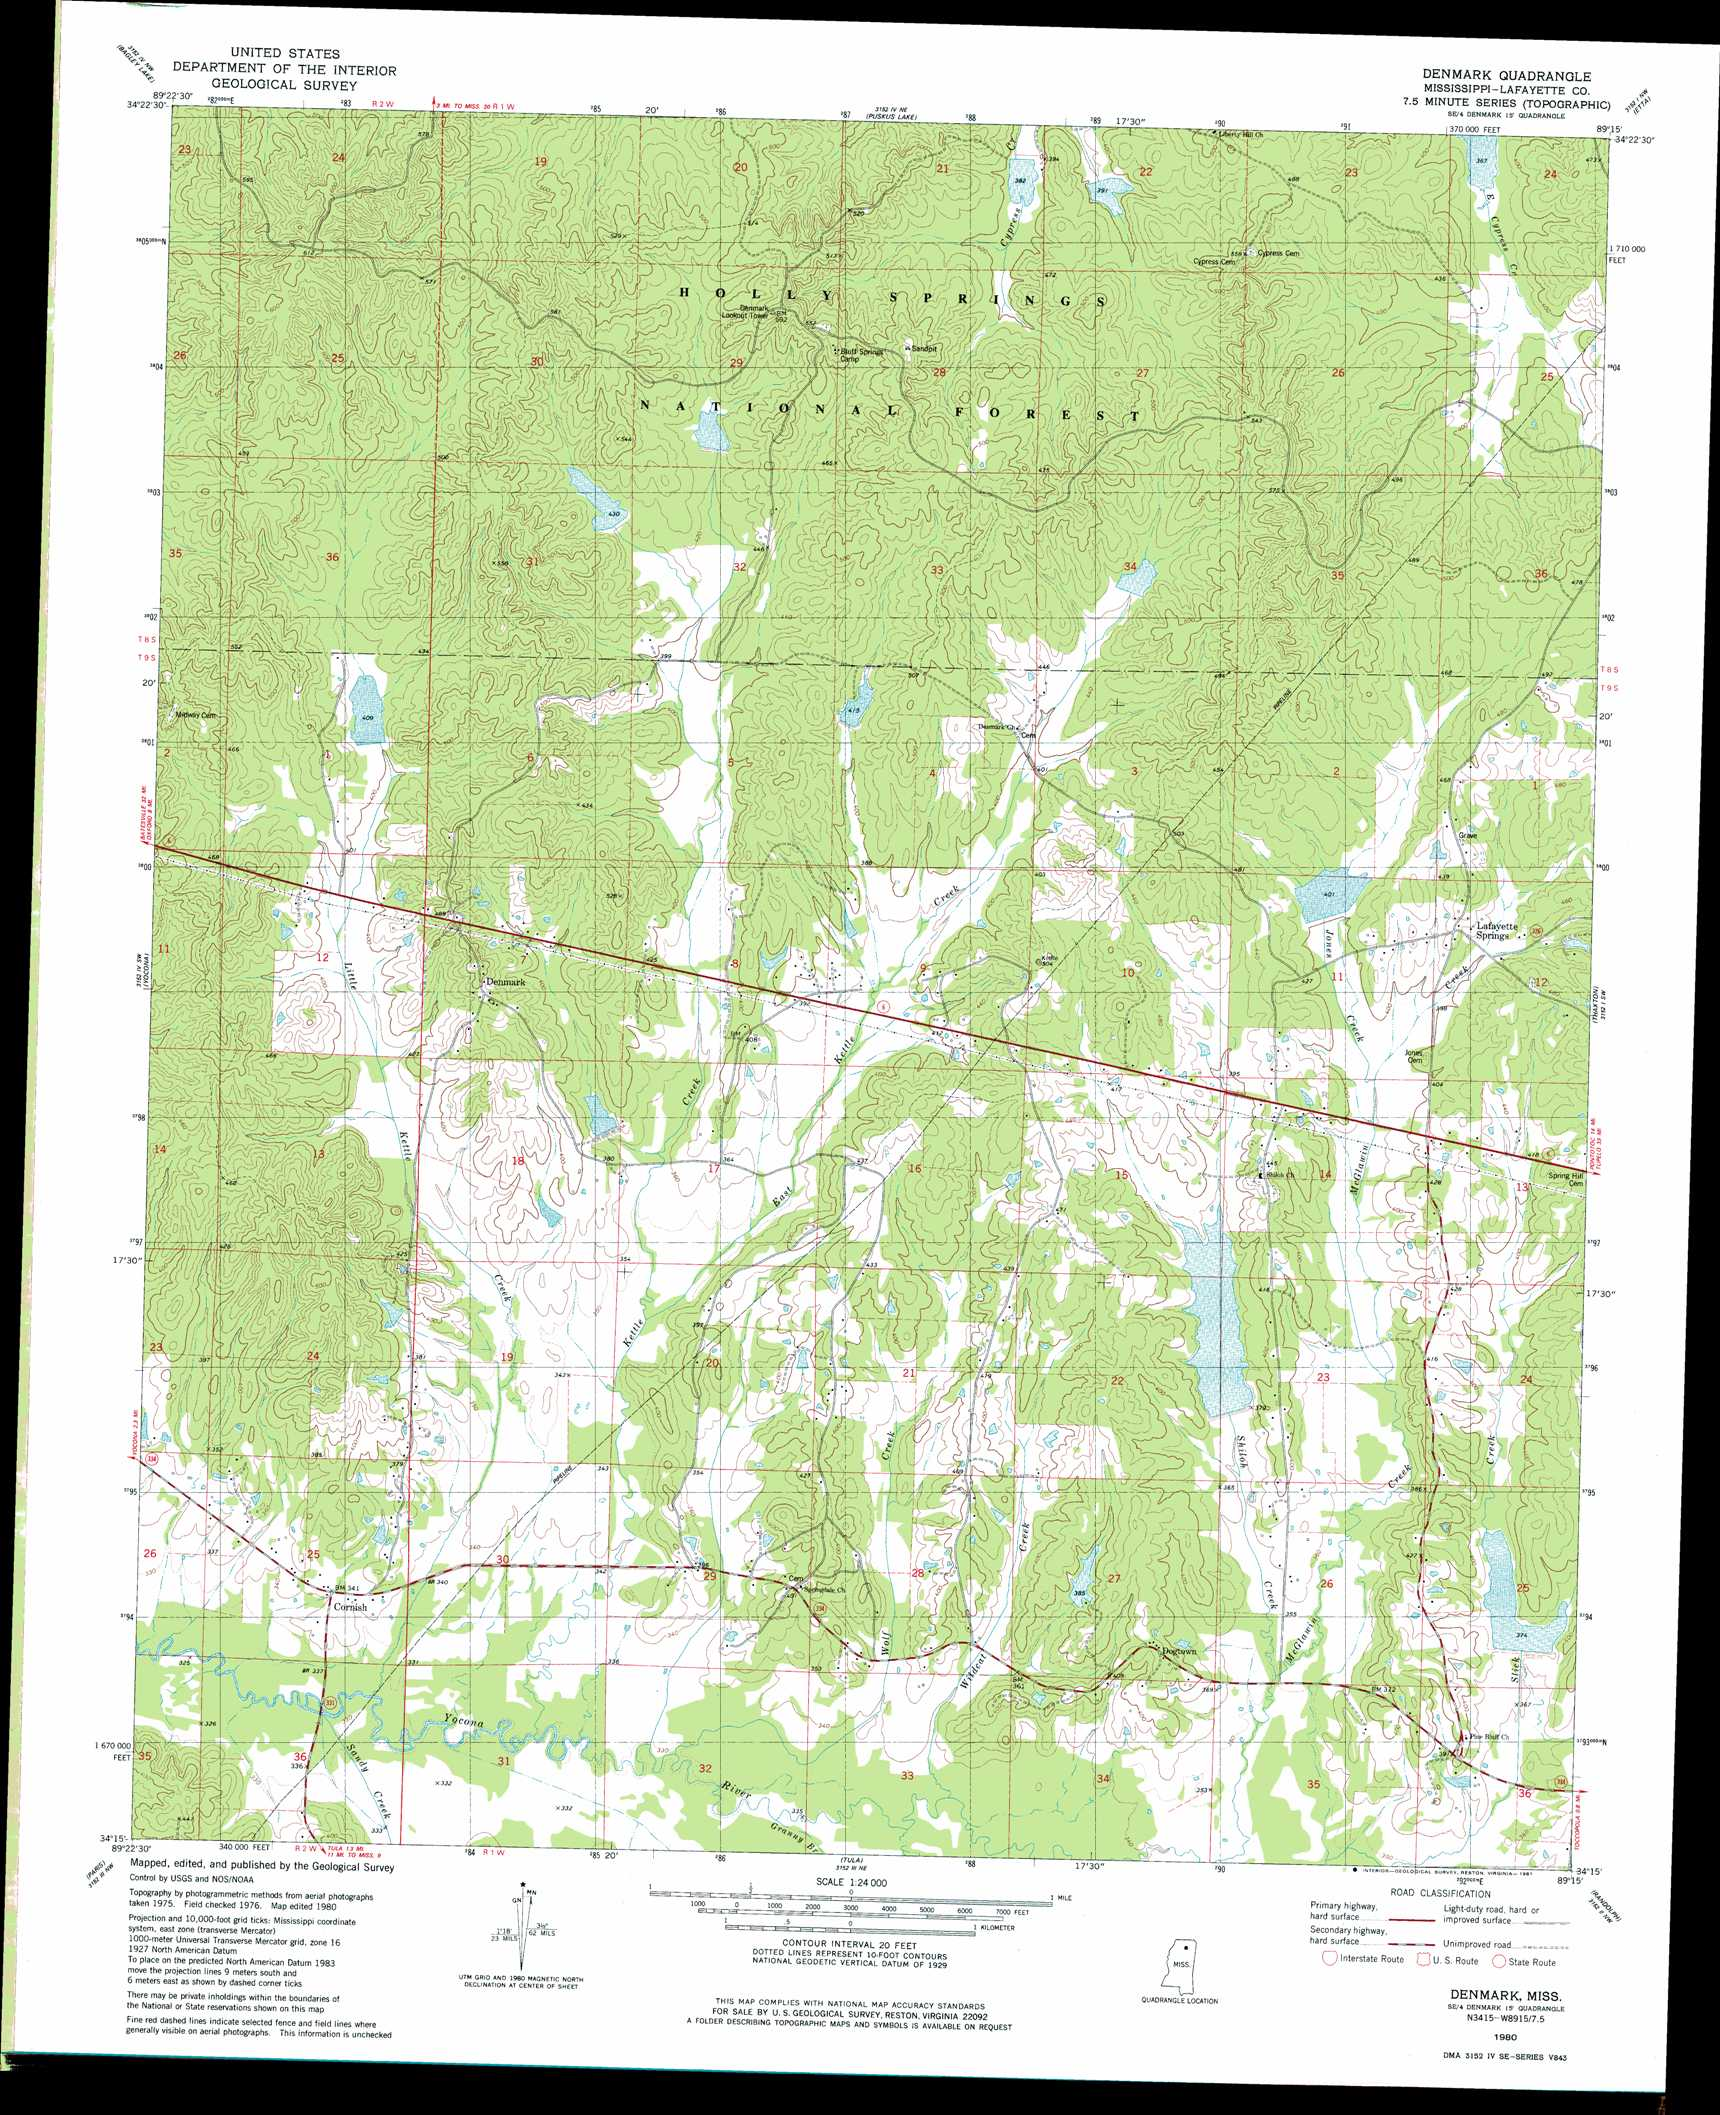 Denmark Topographic Map.Denmark Topographic Map Ms Usgs Topo Quad 34089c3